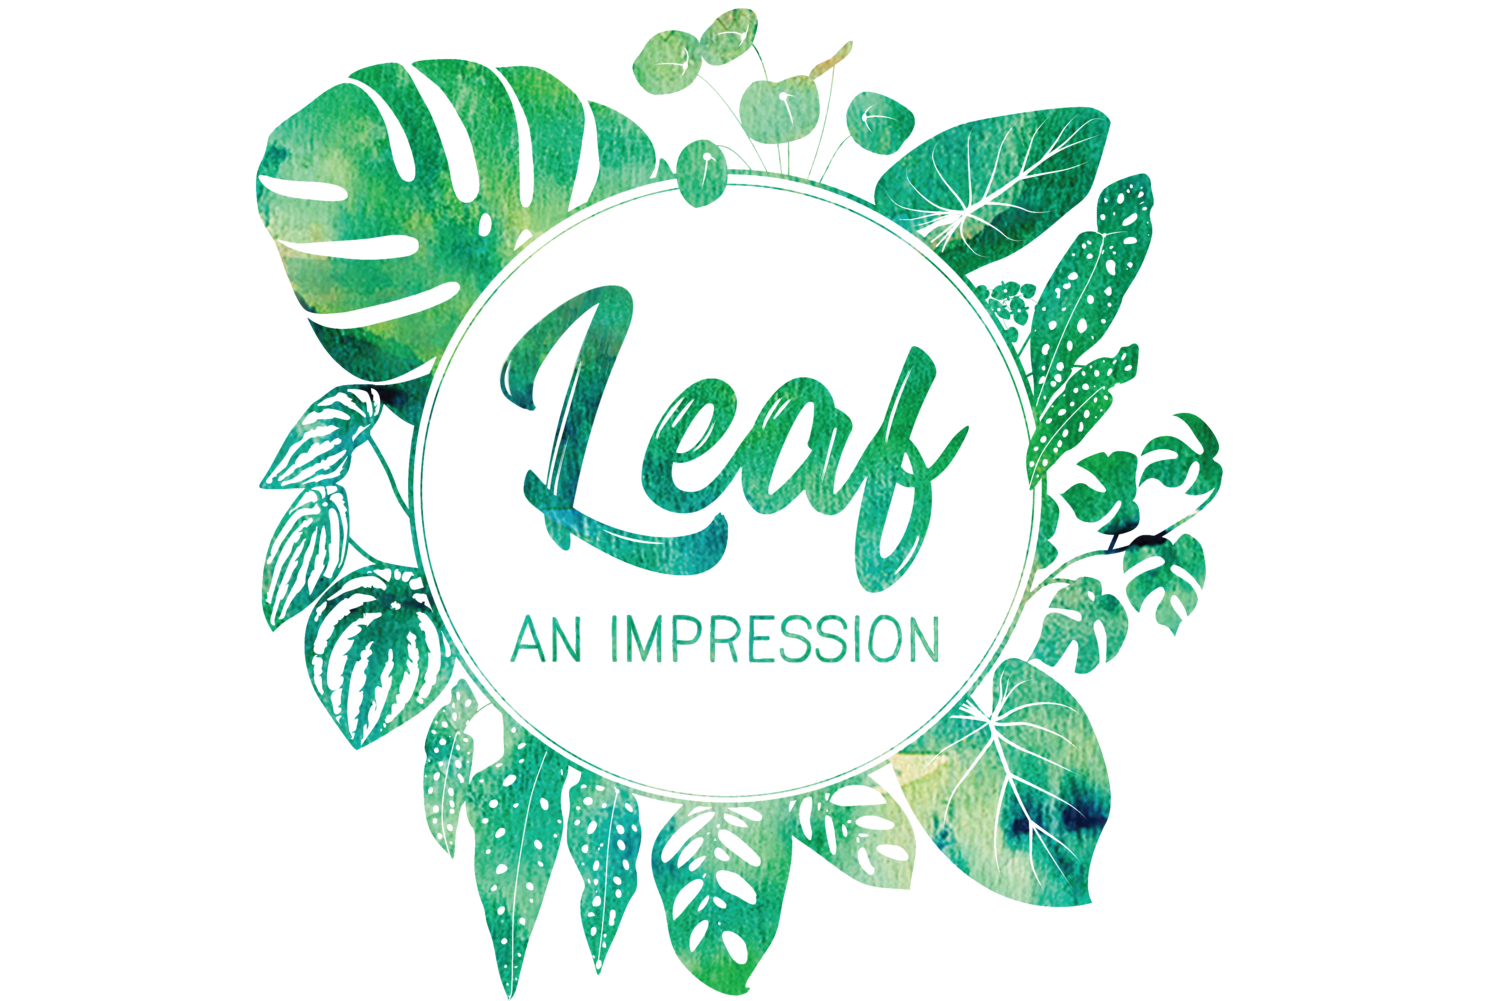 Leaf an Impression